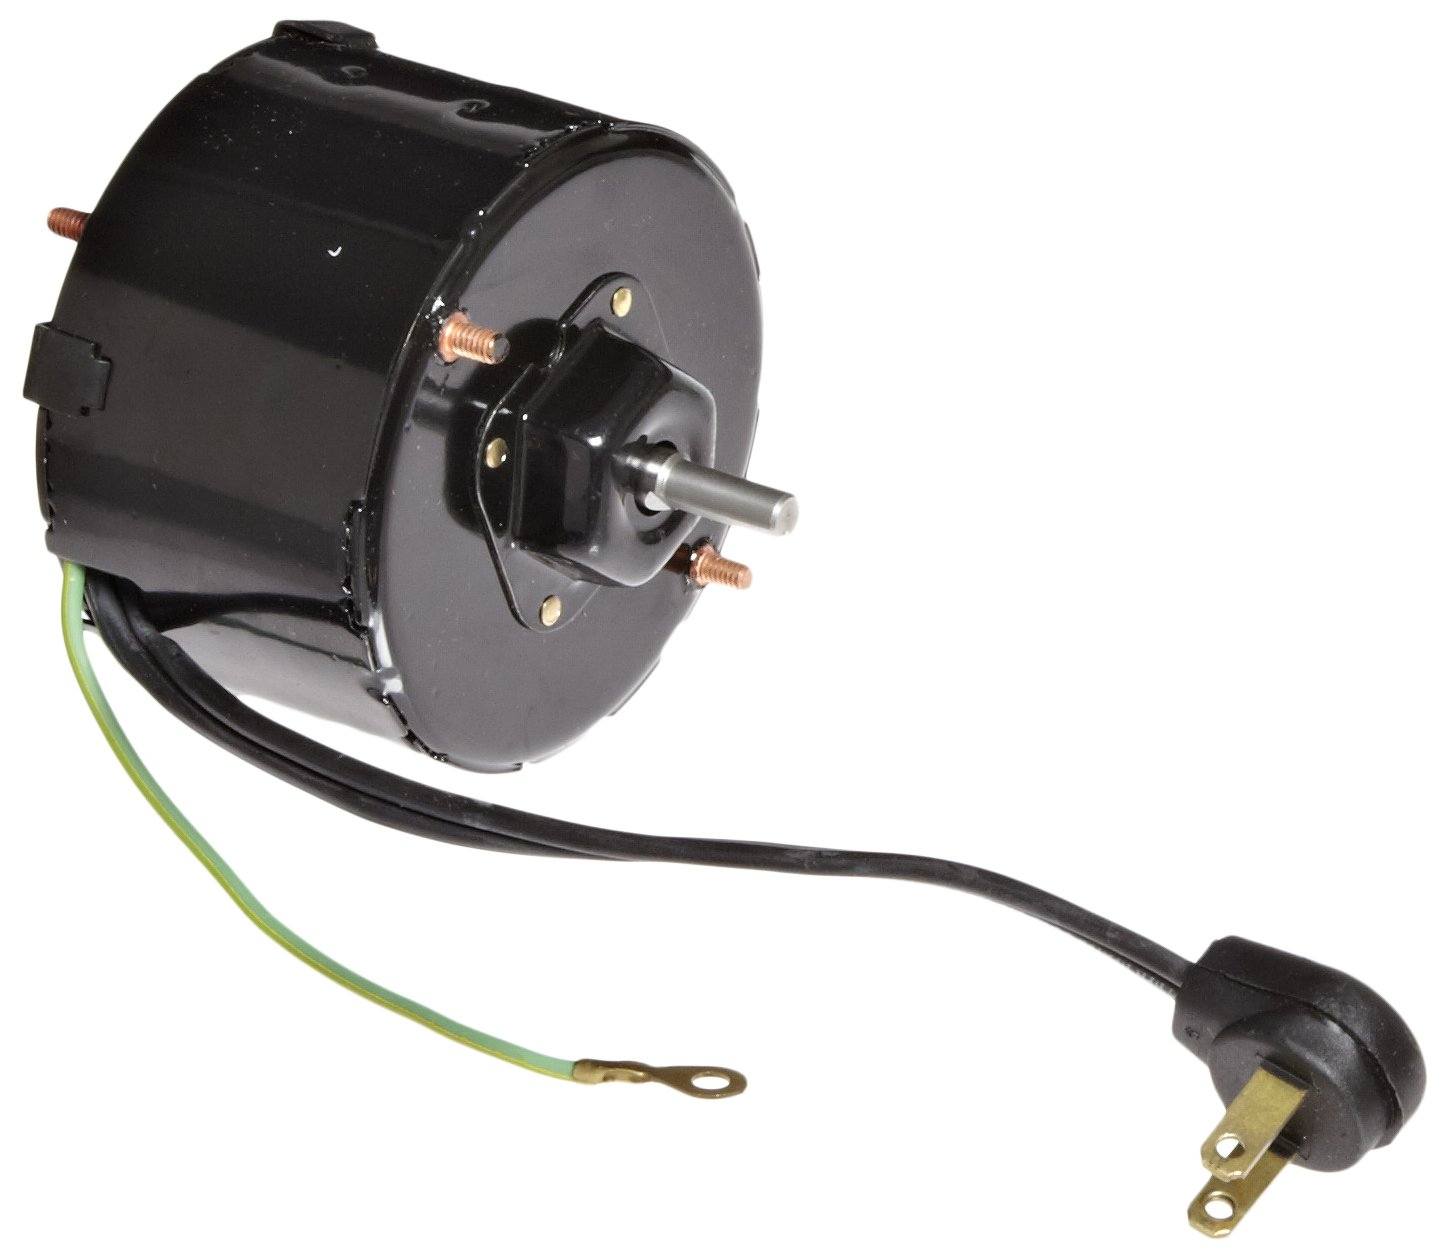 Fasco D1109 3.3'' Frame Totally Enclosed Shaded Pole General Purpose Motor with Sleeve Bearing, 1/100HP, 1500rpm, 115V, 60Hz, 0.65 amps